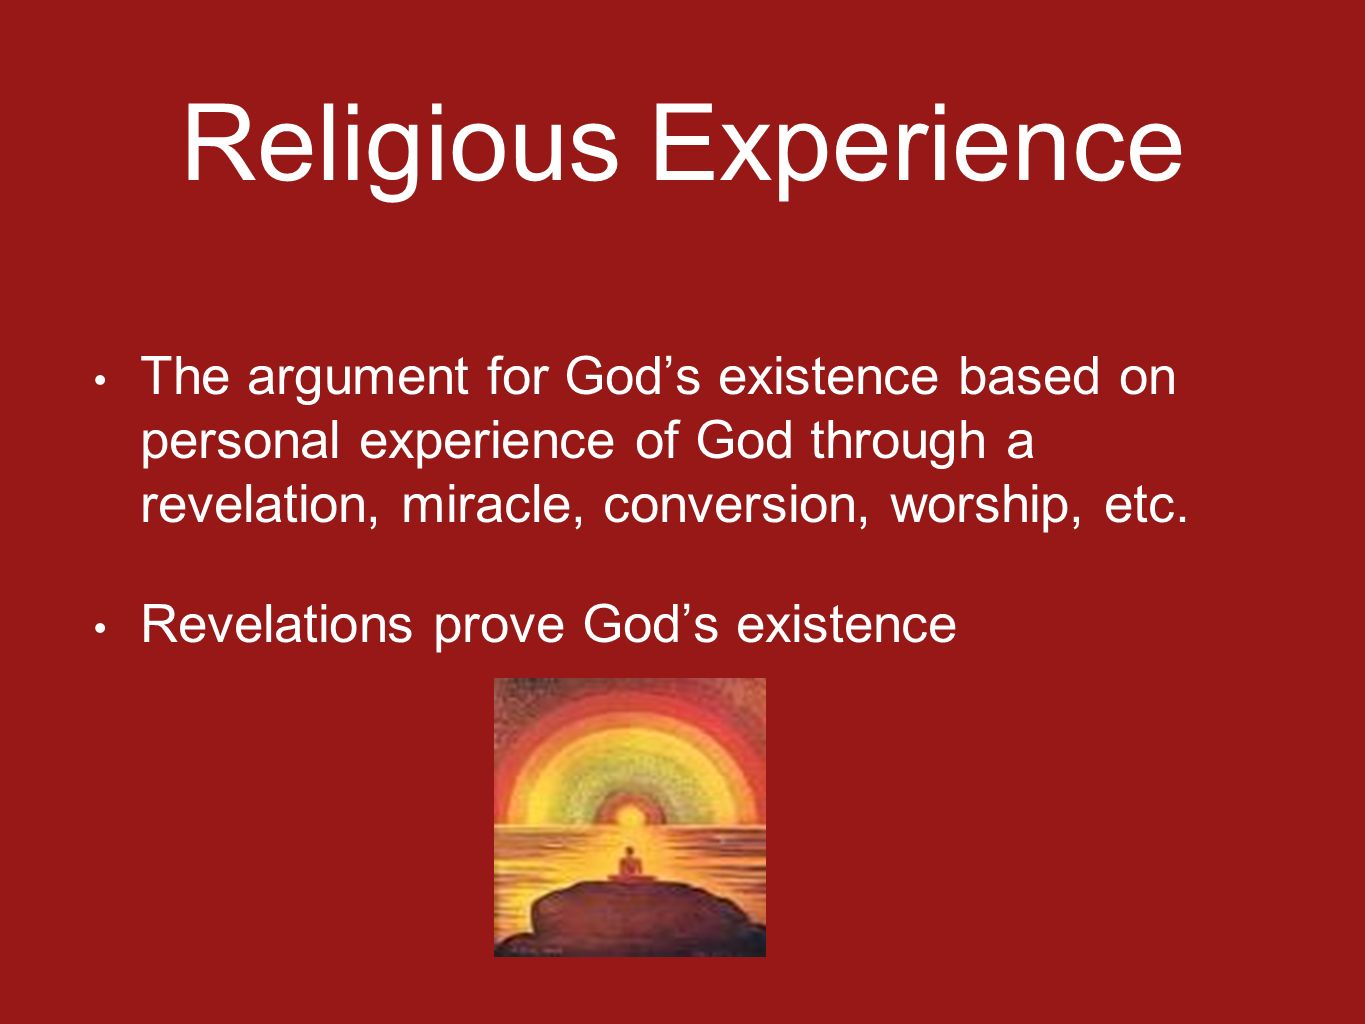 religious experience This is intended for unit 1 of edexcel's unit 3, believing in god it's a primitive explanation of 4 religious experiences, prayer numinous conversion mirac.